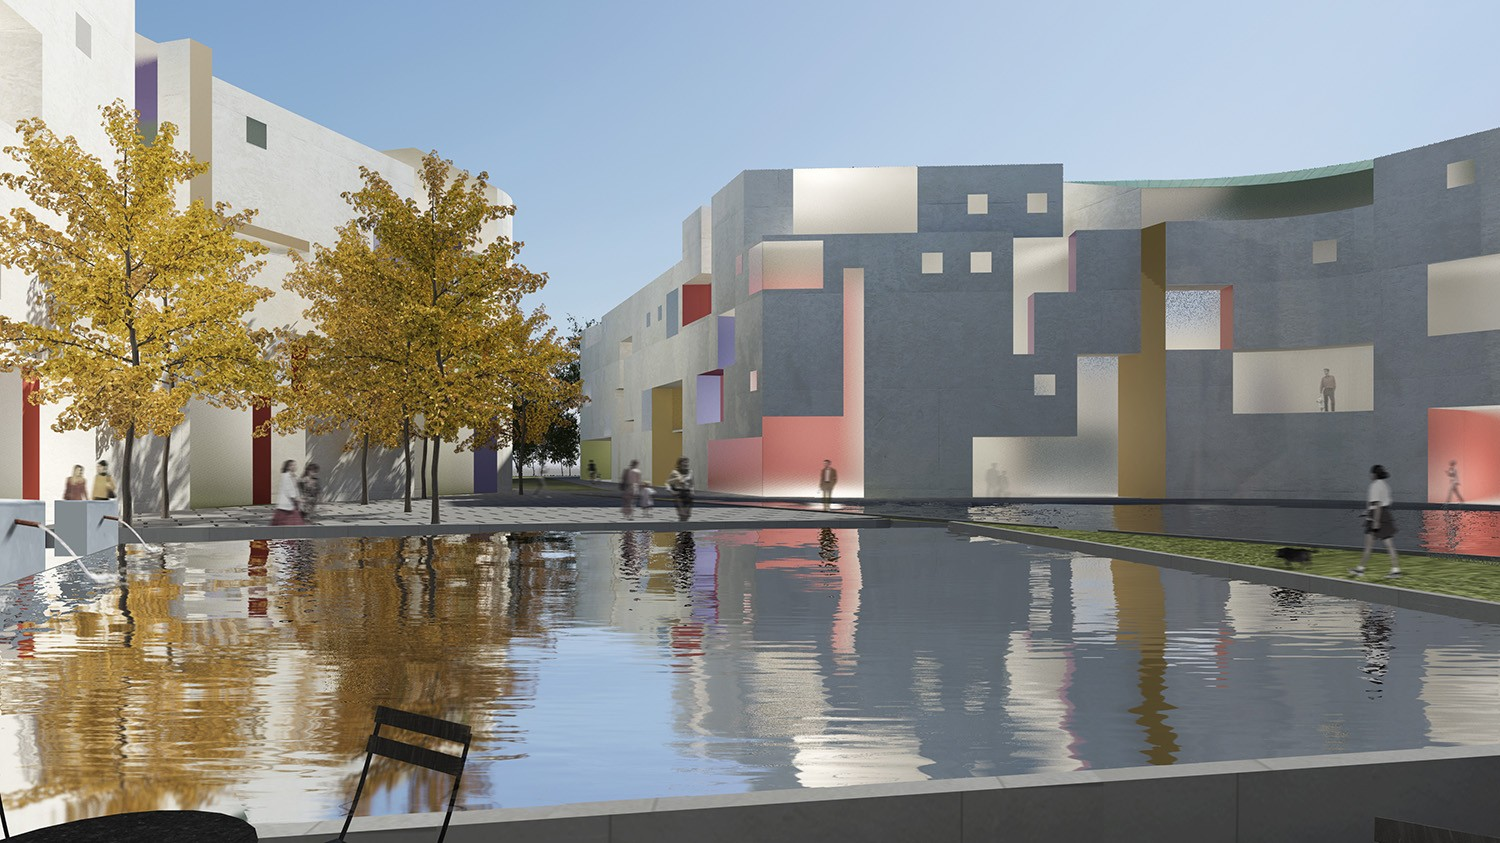 https://stevenholl.sfo2.digitaloceanspaces.com/uploads/projects/project-images/StevenHollArchitects_MGI_SHA-Moscow-main plaza_3_WH.jpg